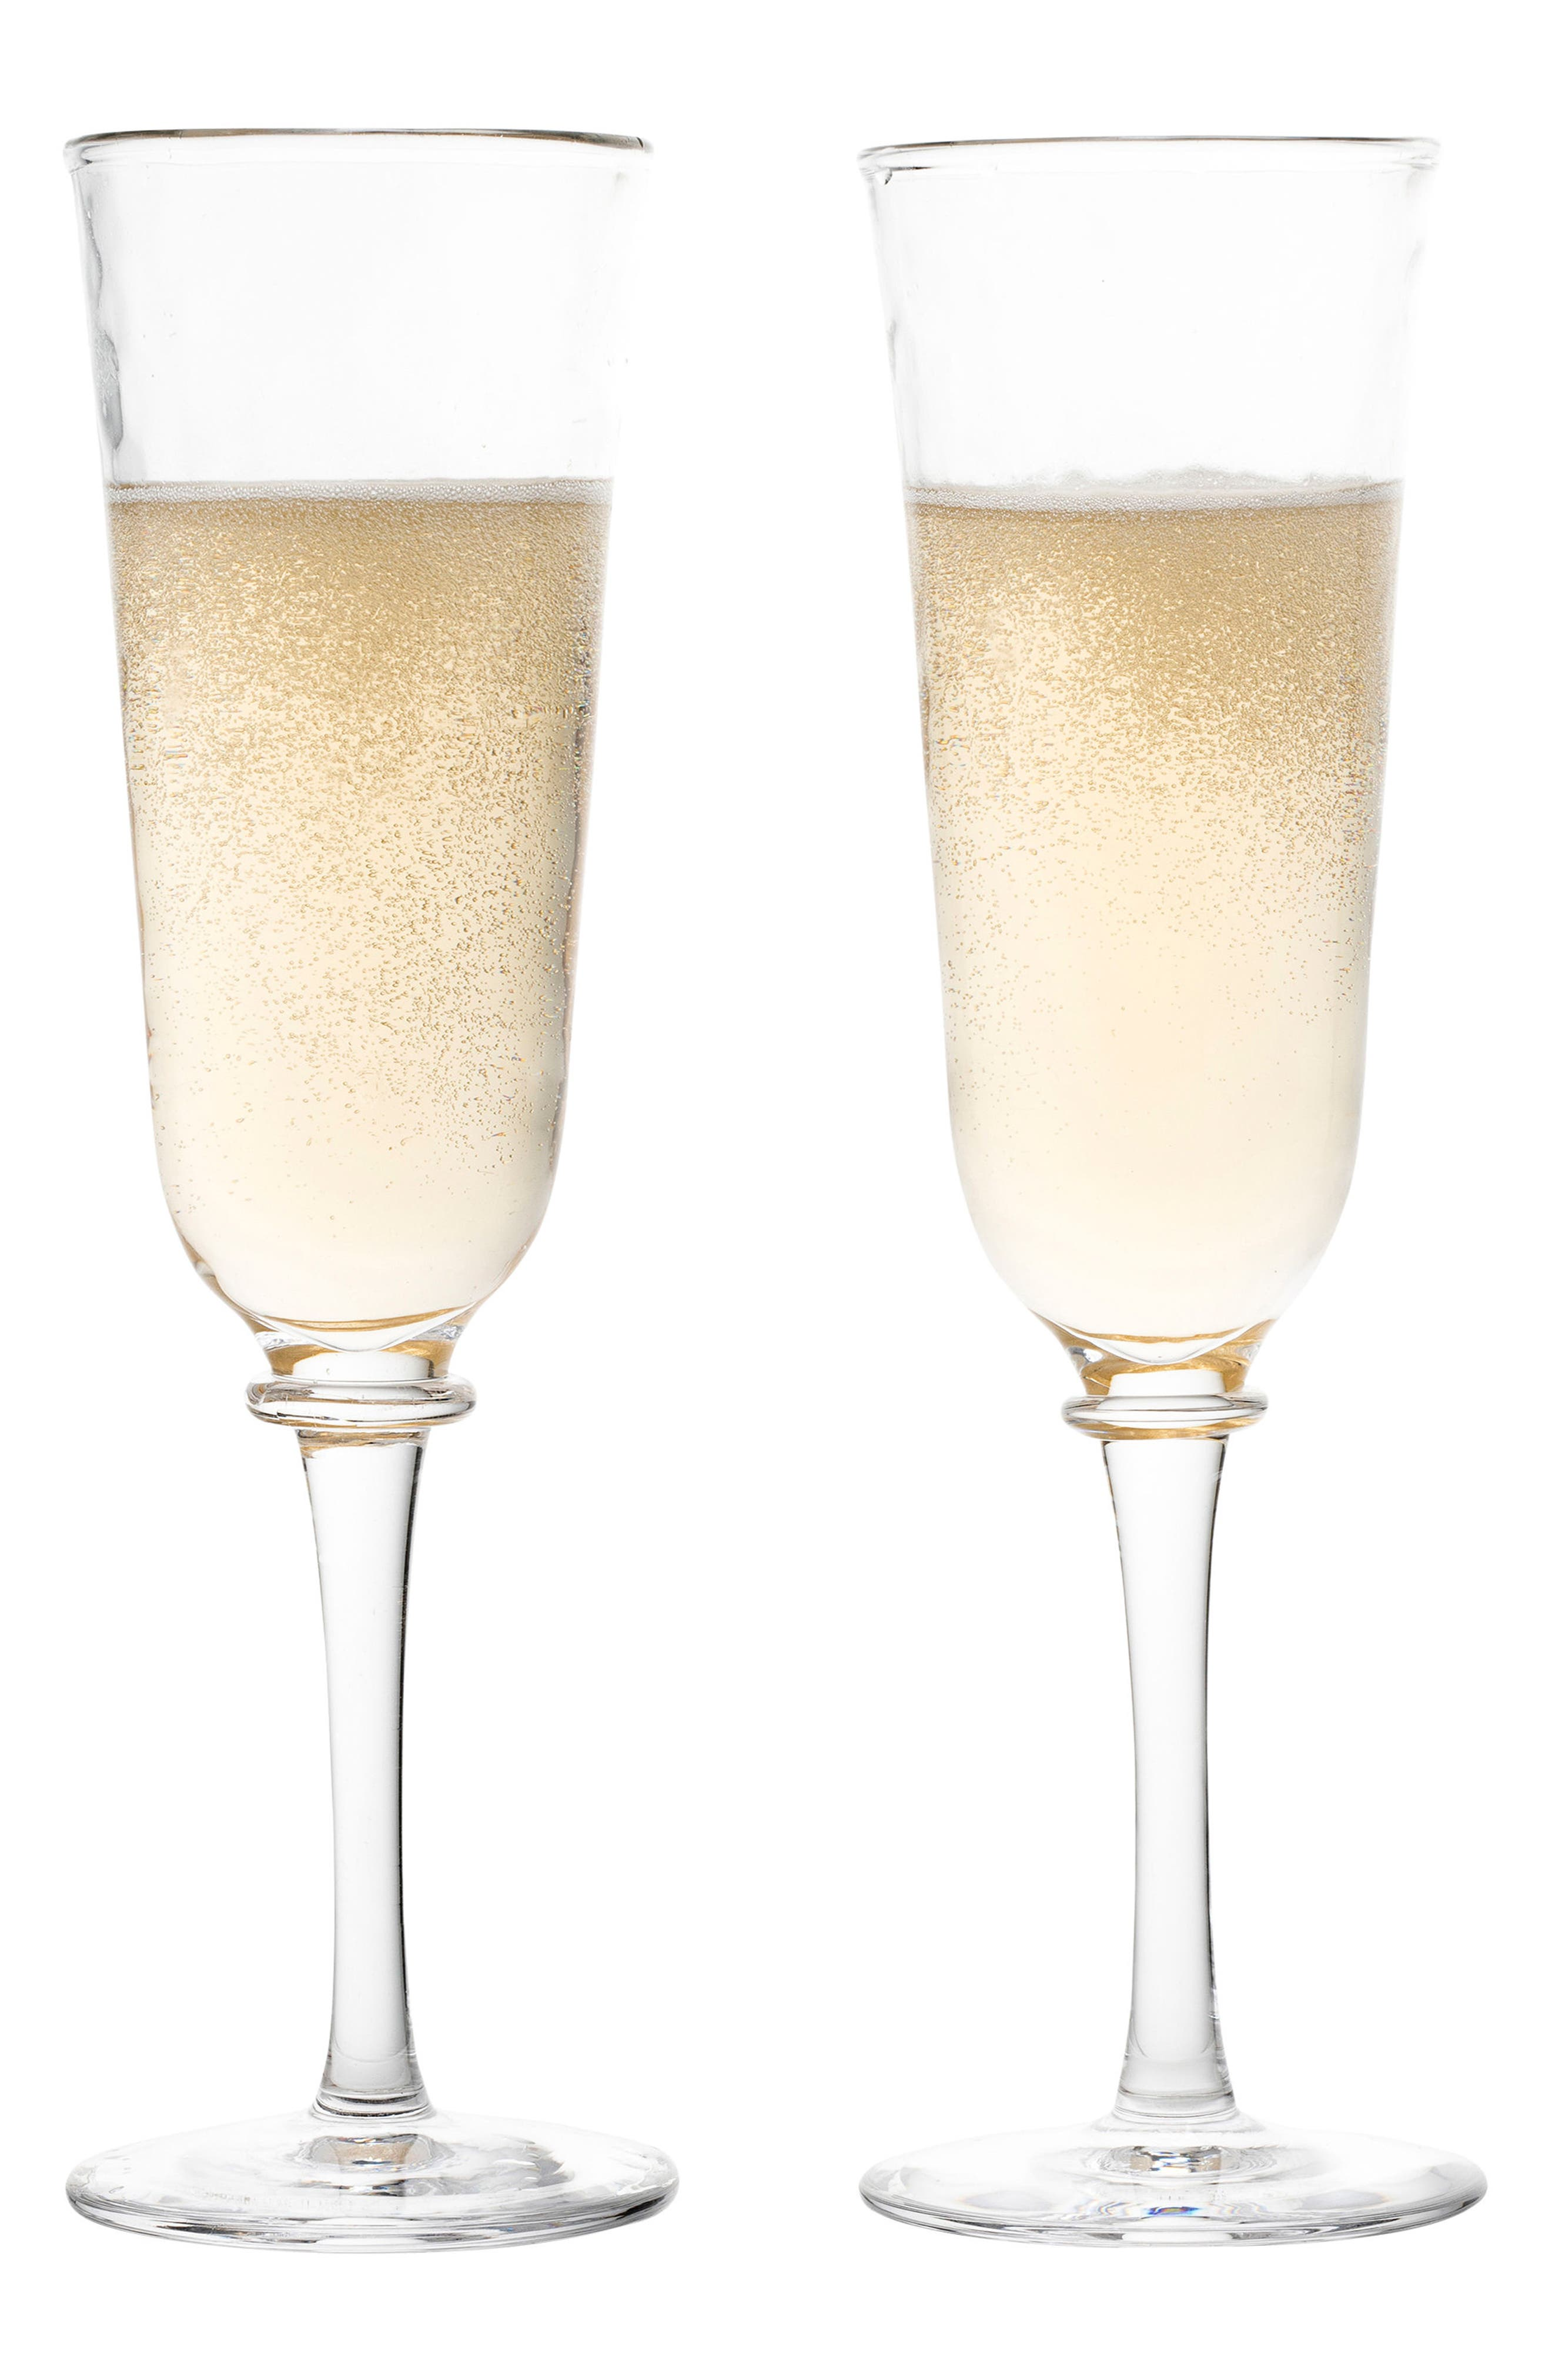 Carine Set of 2 Champagne Flutes,                             Alternate thumbnail 2, color,                             CLEAR